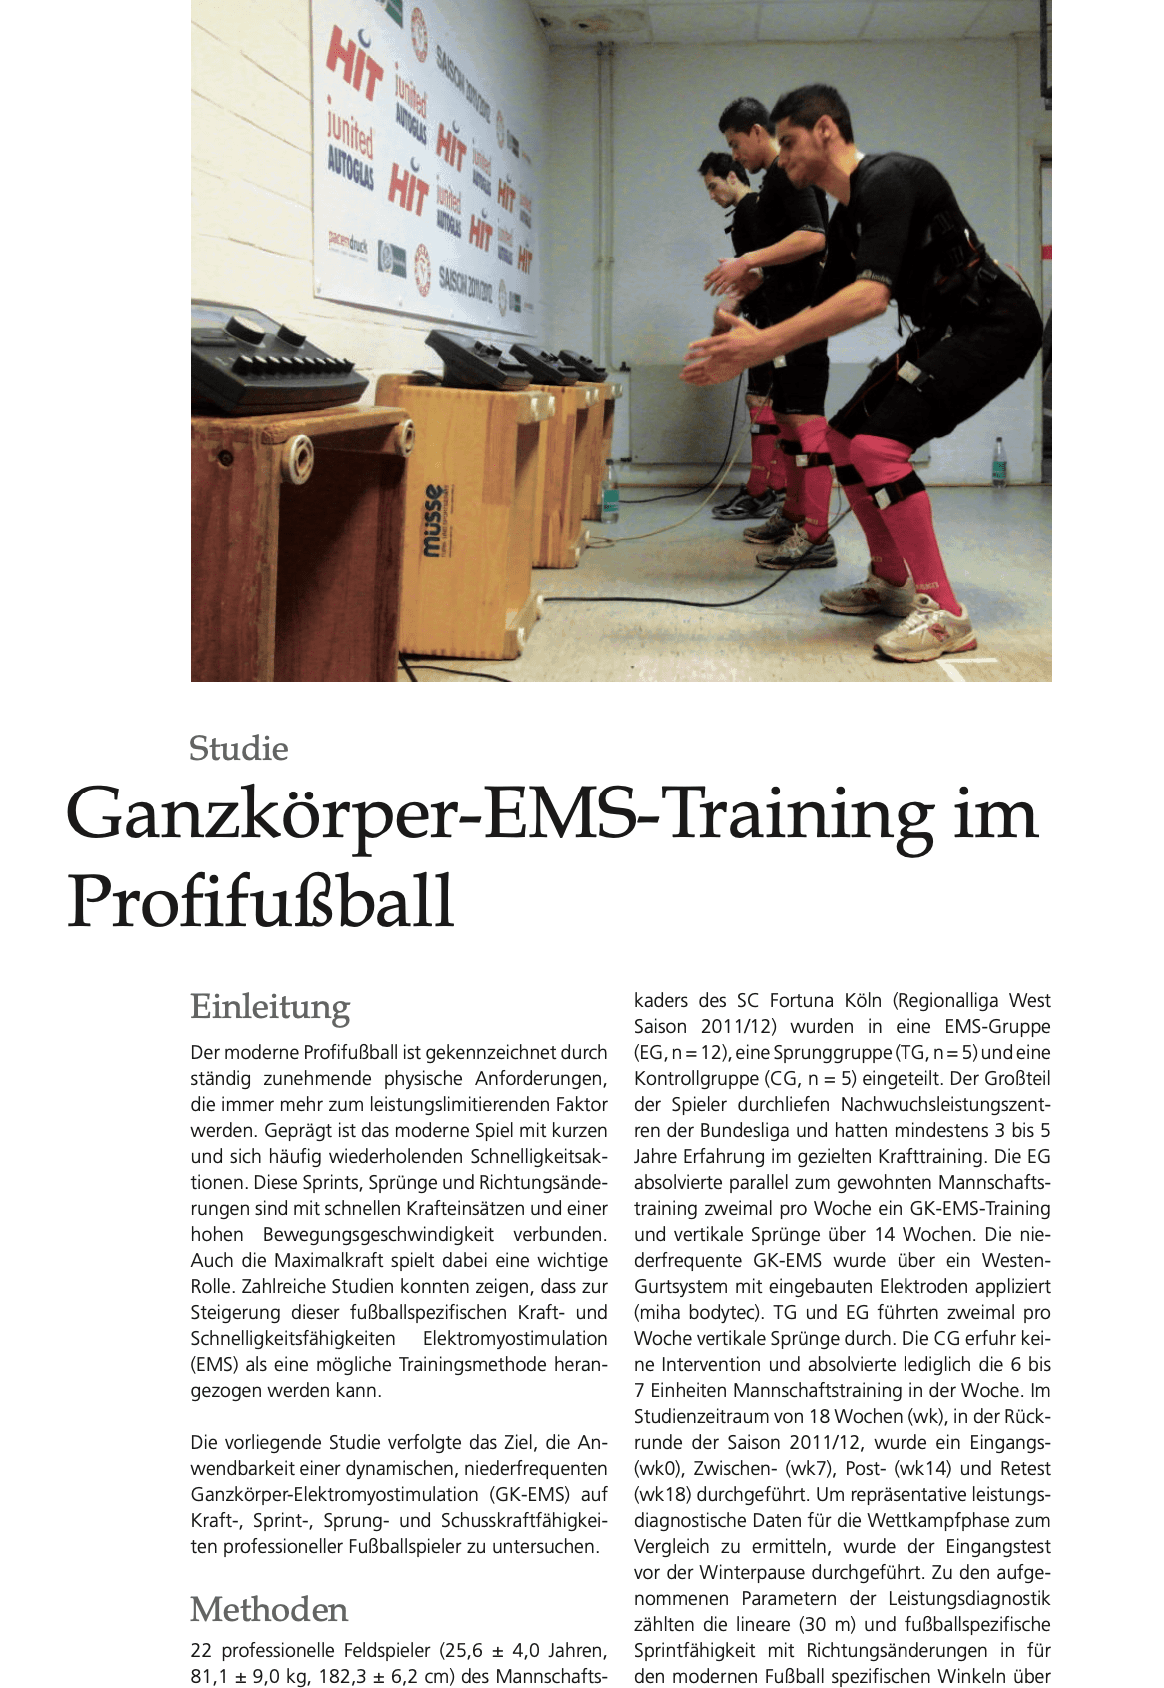 Ems Fussball Training Studie Justfit Club Hamburg Profifussball personal Trainer hamburg